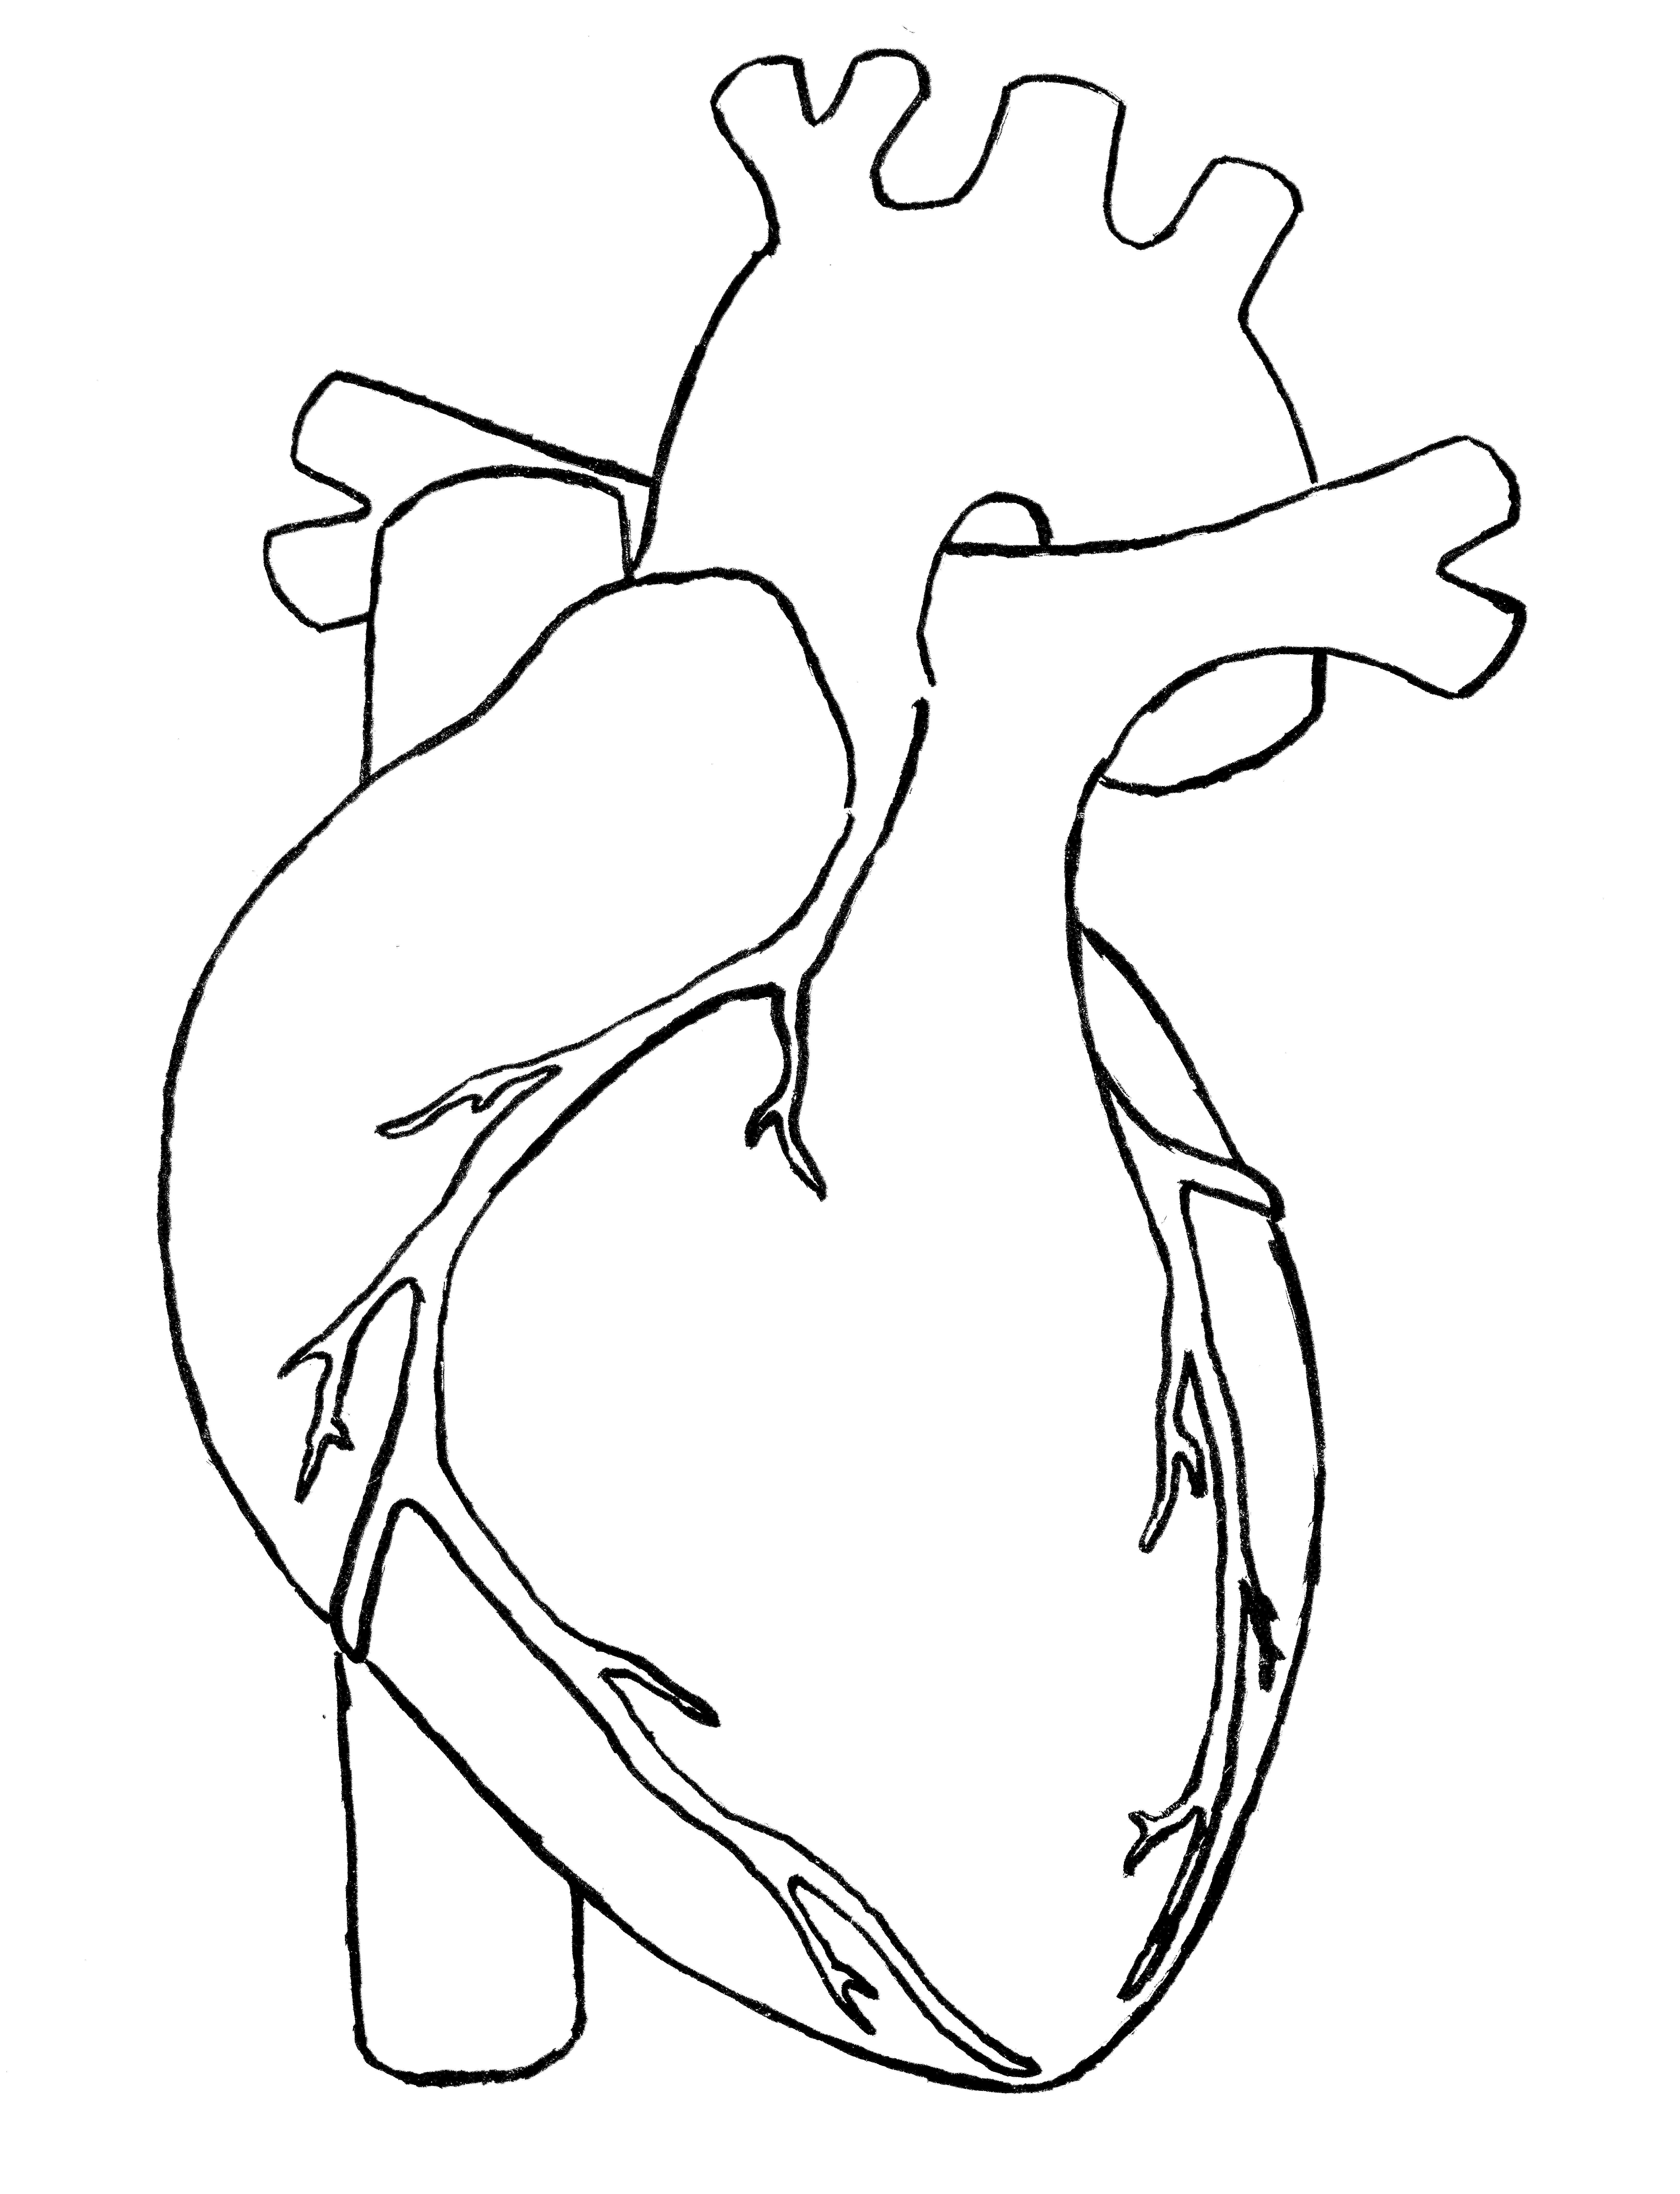 Line panda free images. Drawing clipart heart vector black and white stock